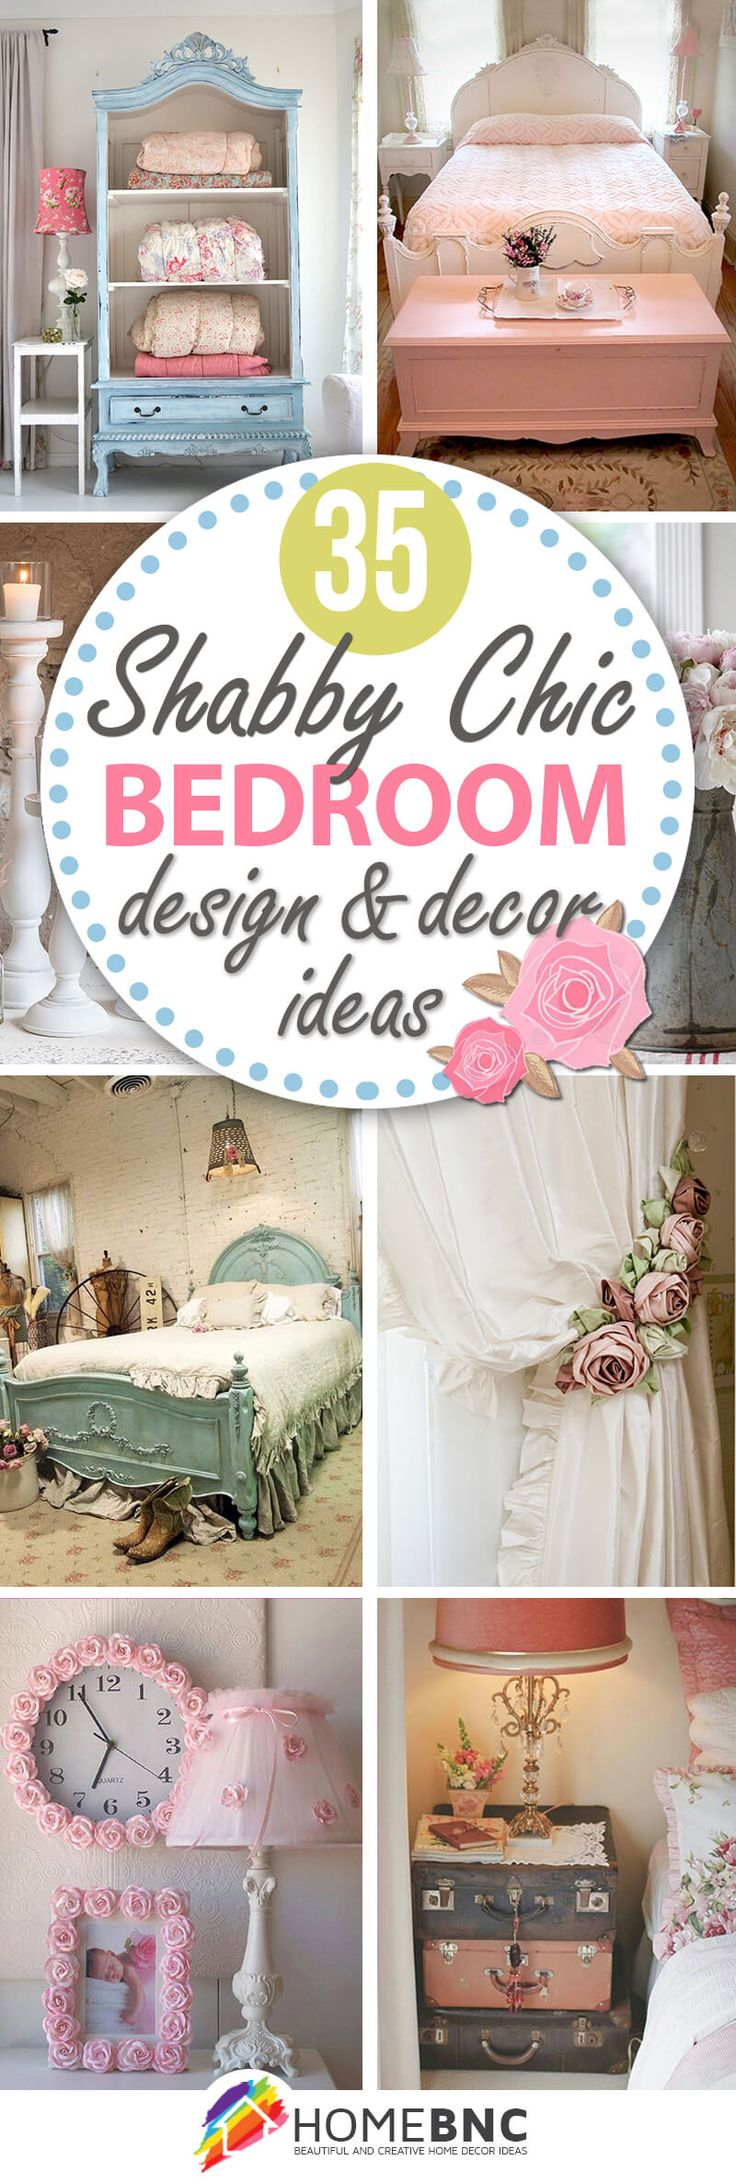 35 amazingly pretty shabby chic bedroom design and decor ideas - Shabby Chic Bedroom Decorating Ideas